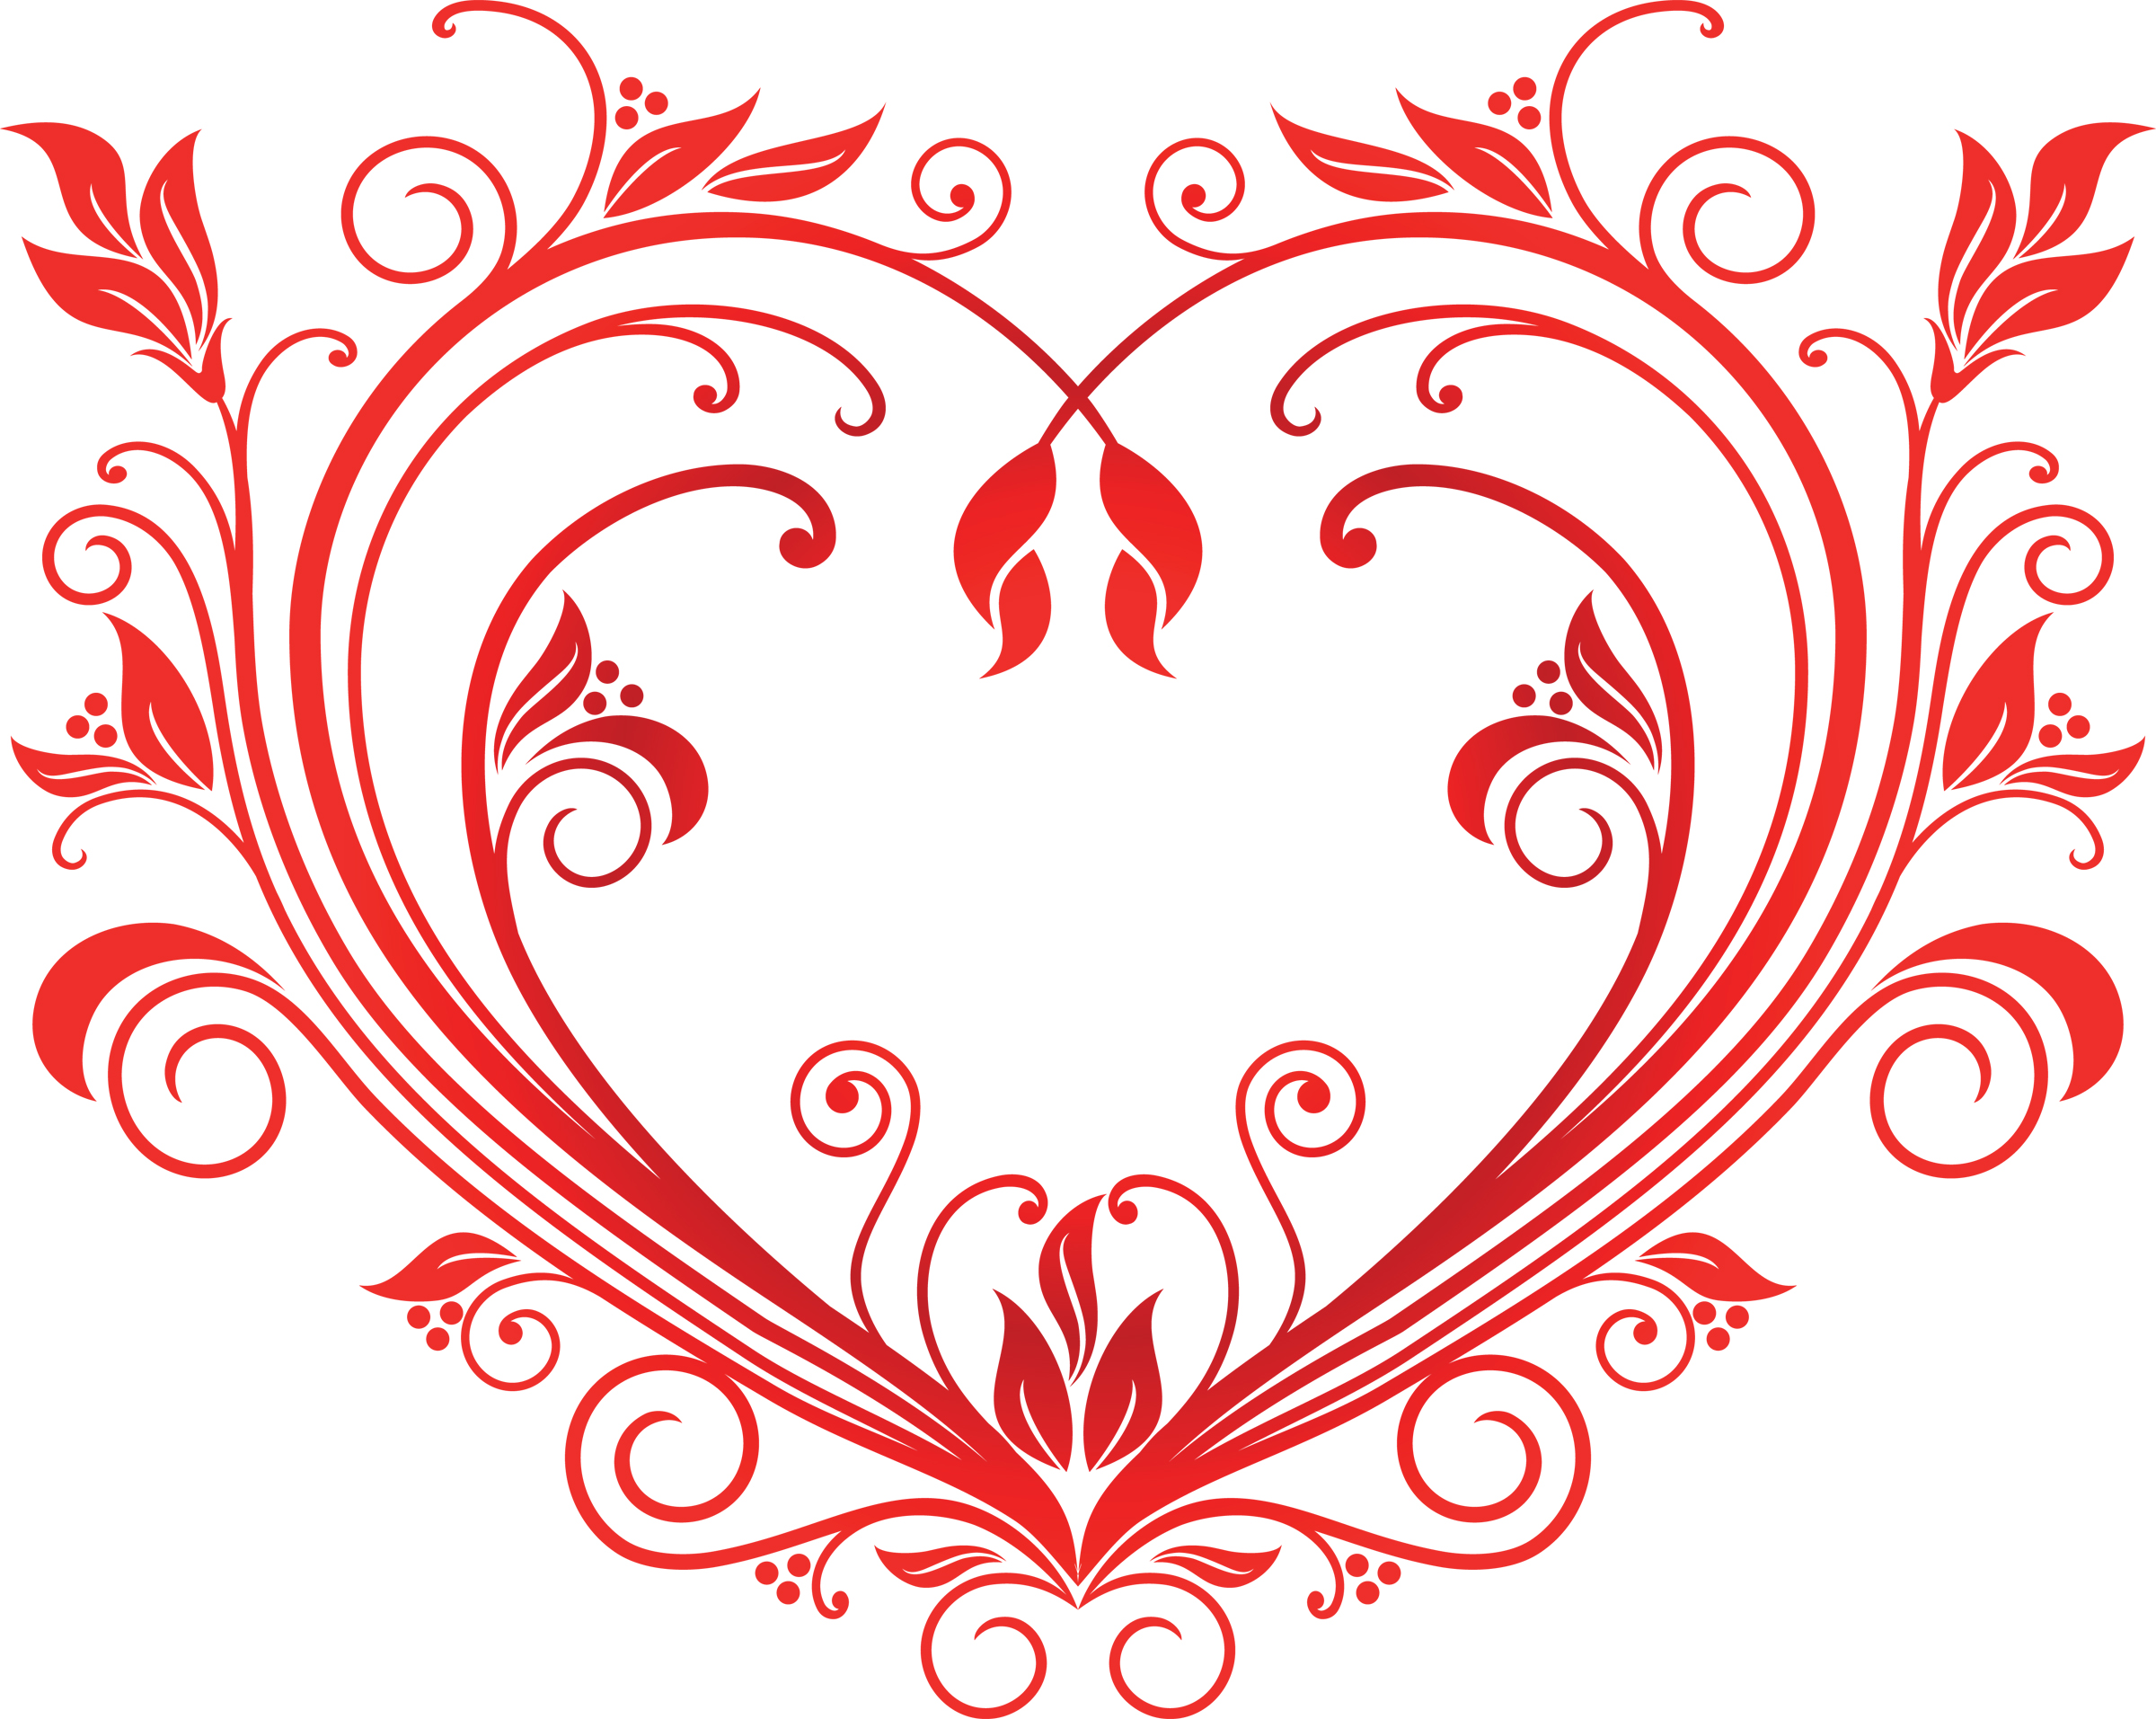 Free Heart Designs Cliparts, Download Free Clip Art, Free.